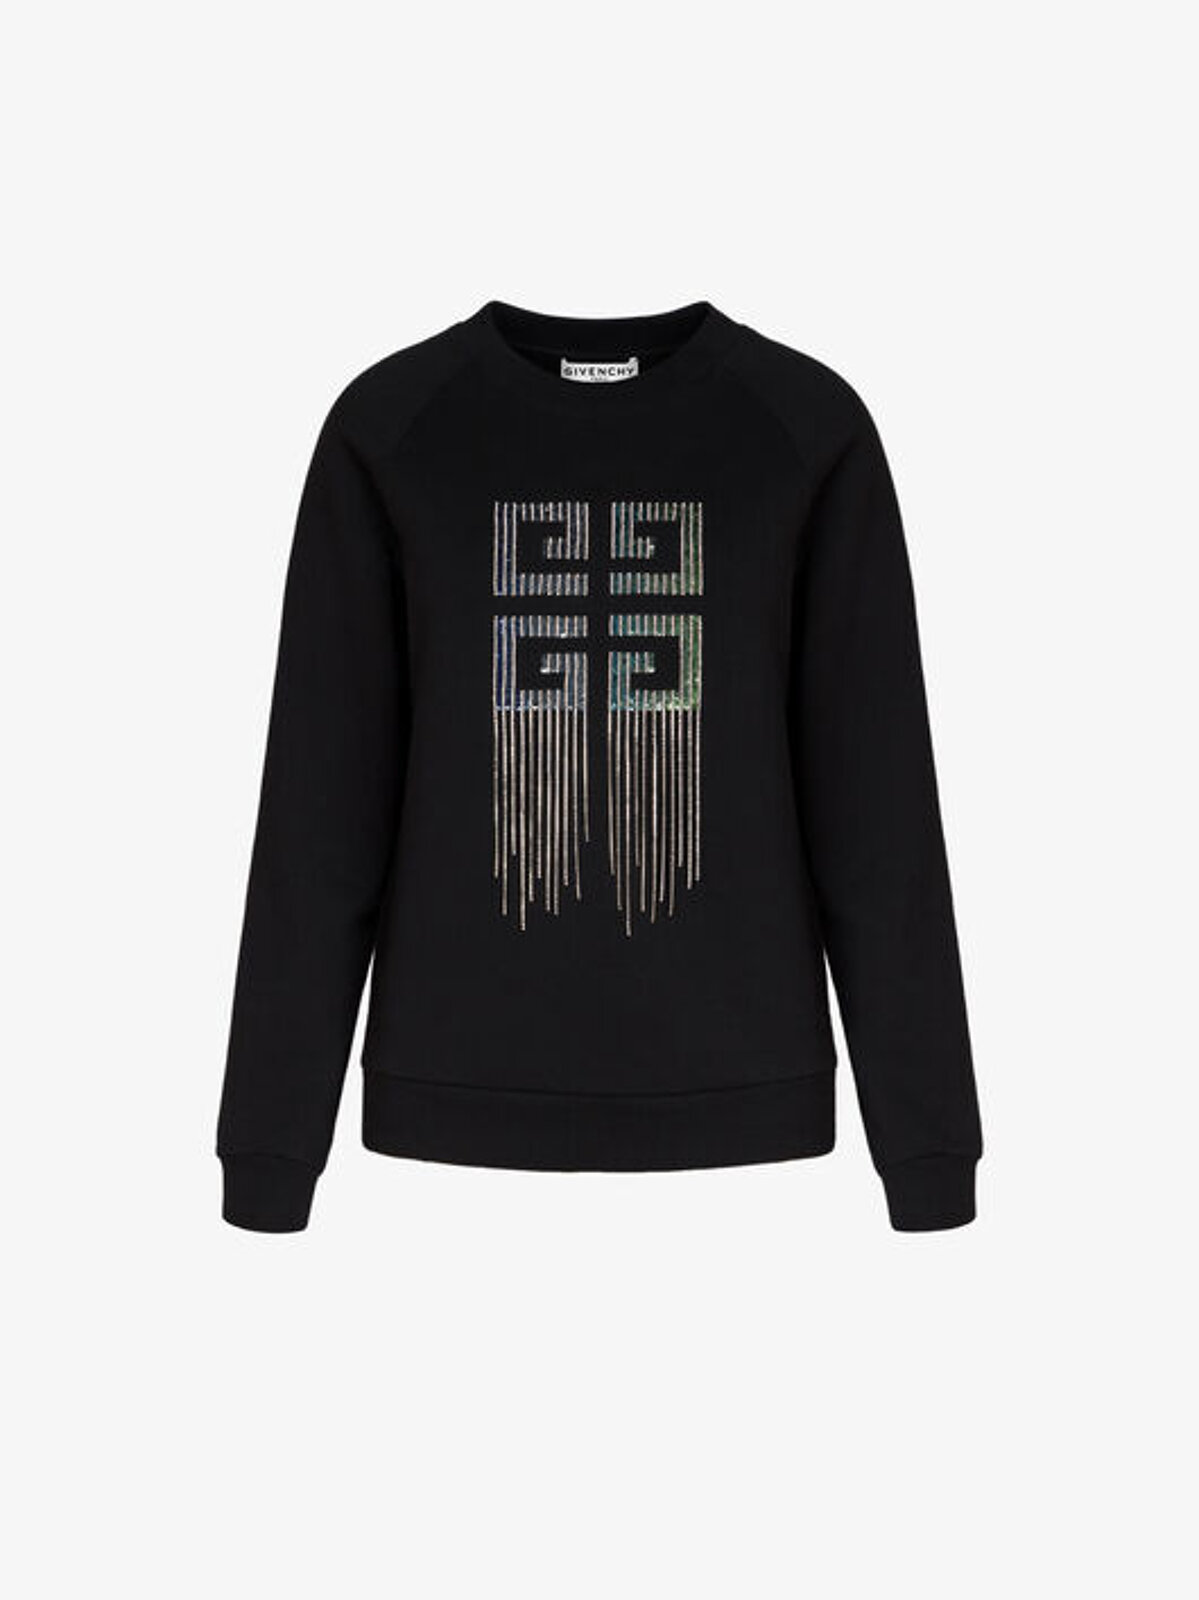 Sweatshirt With Crystals And Sequins 4G - Givenchy